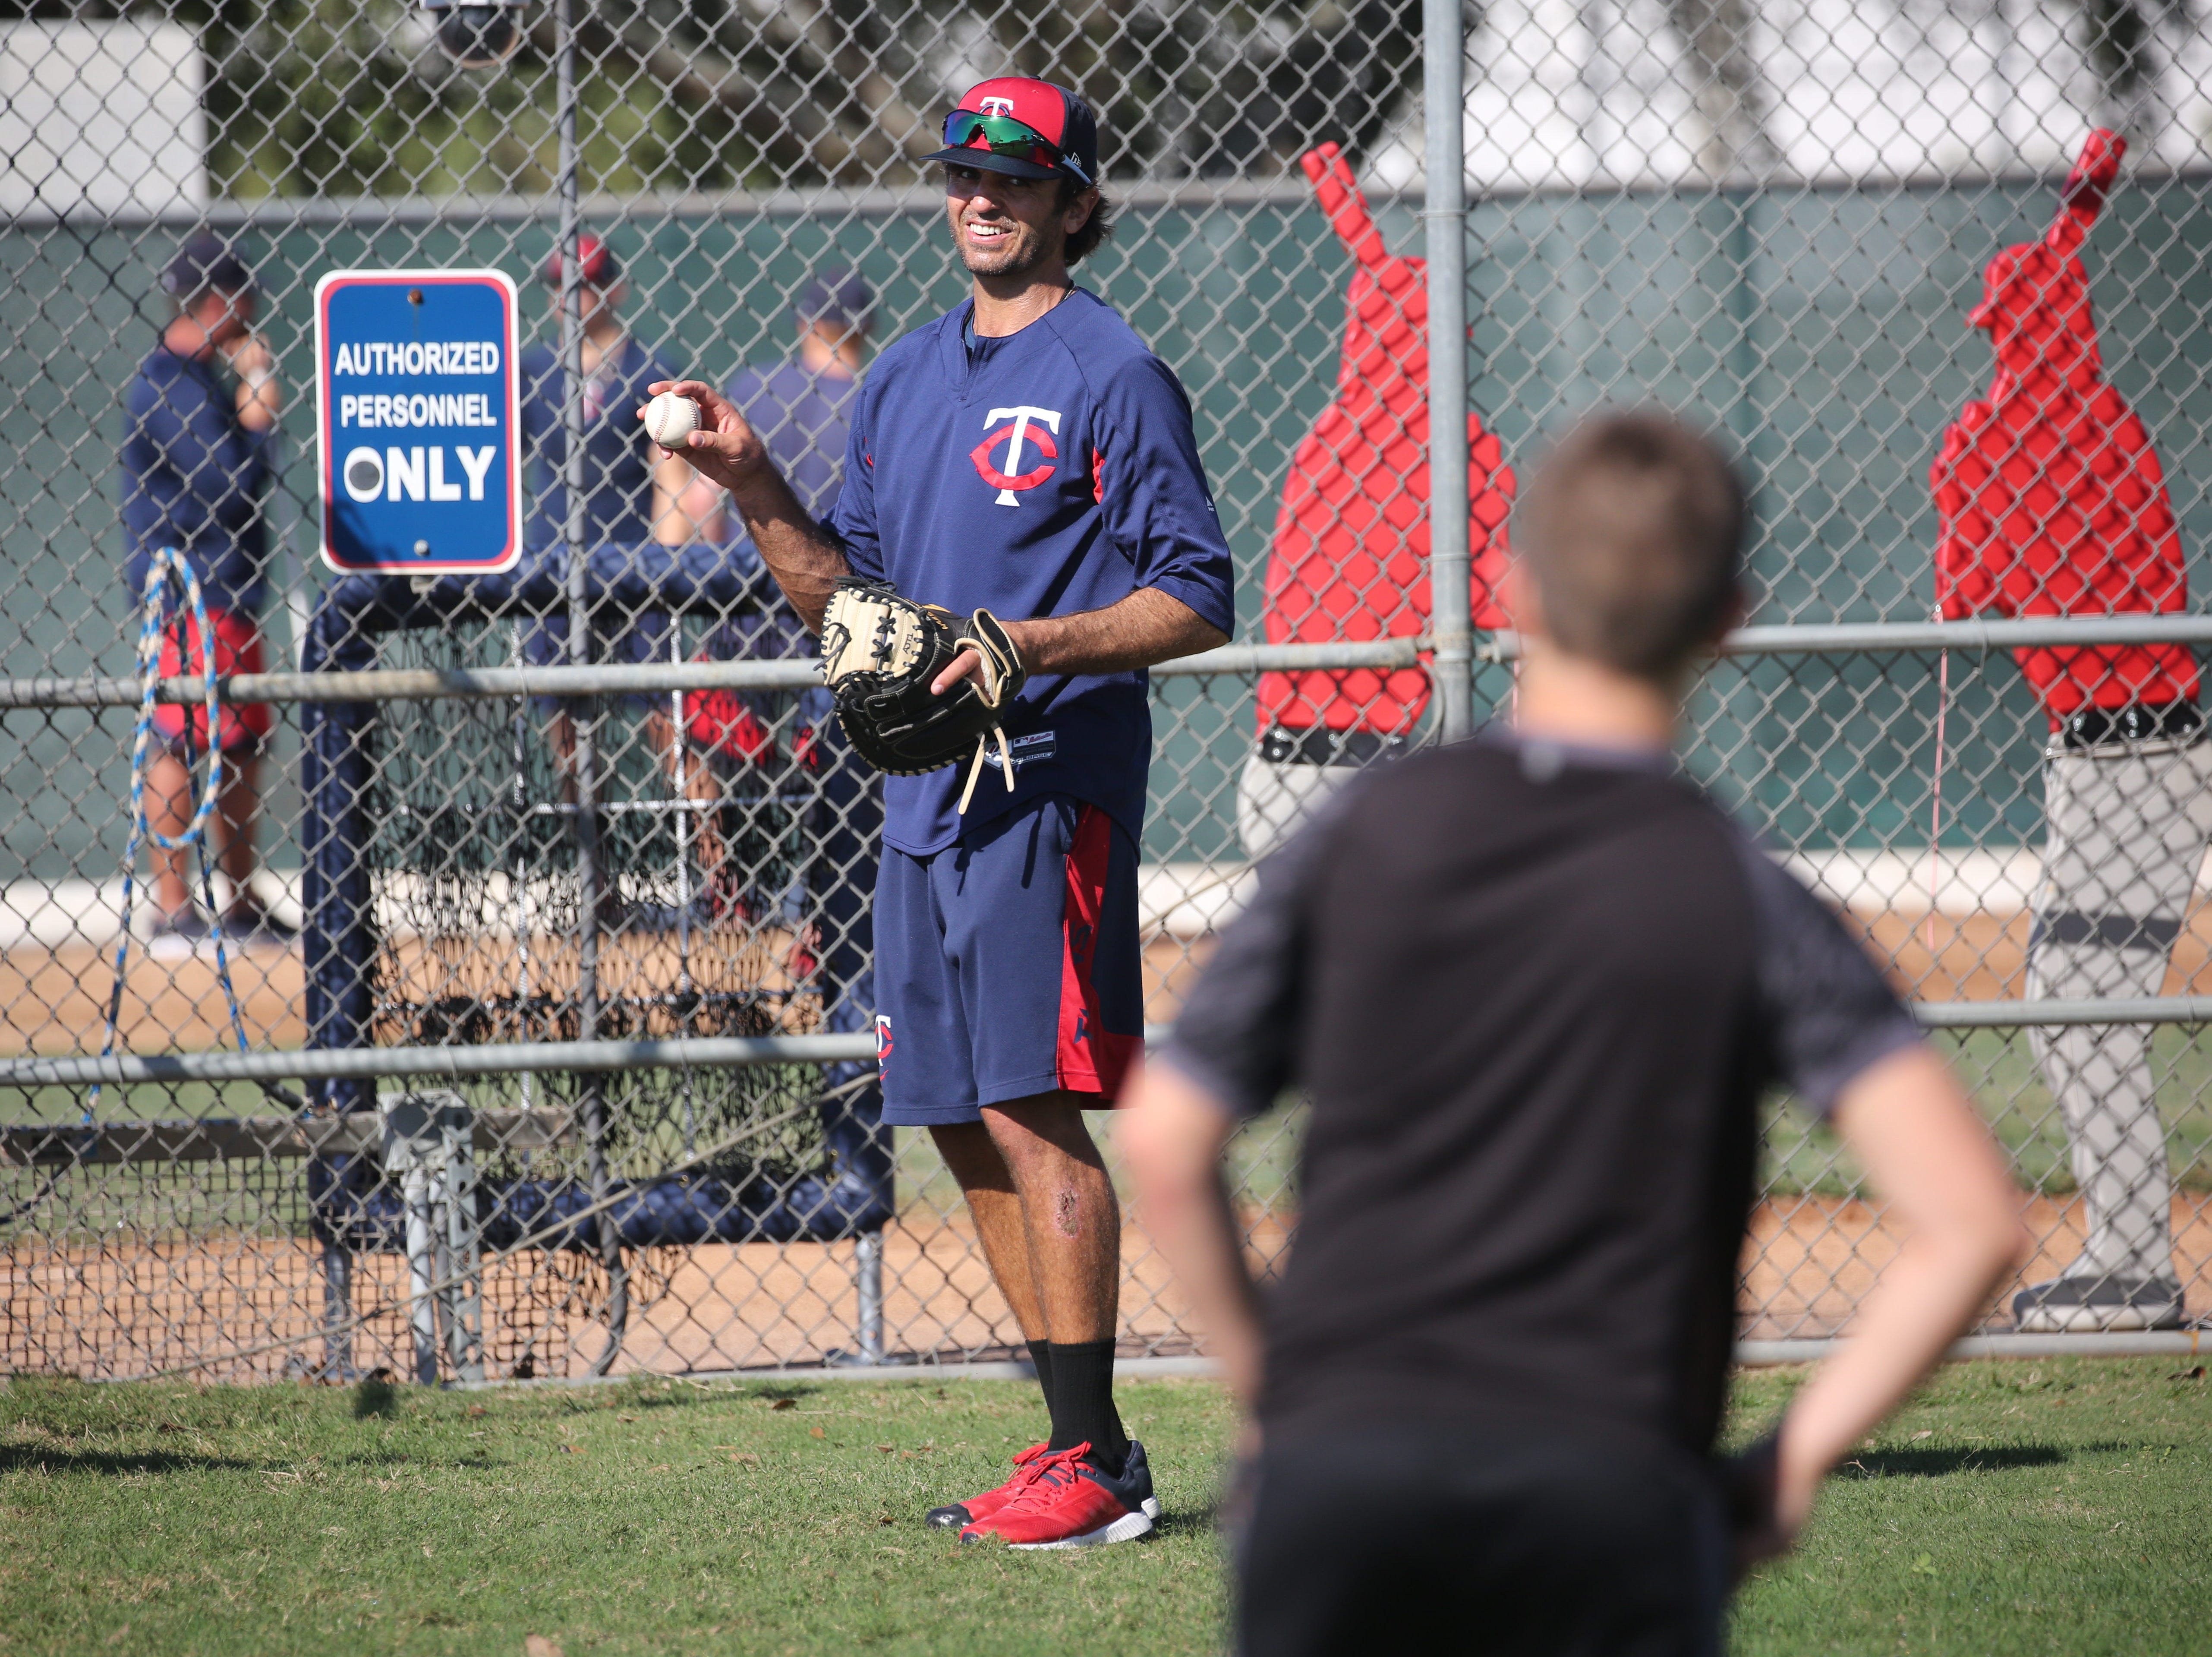 Virgil Vasquez, a pitching coach for the Minnesota Twins organization, throws with Twins fan Thomas Slette, 12, of Hawley, Minn., on Friday morning, Feb. 8, 2019, at the Century Link Sports Complex in Fort Myers. The first official Spring Training practice for pitchers and catchers is on Wednesday.